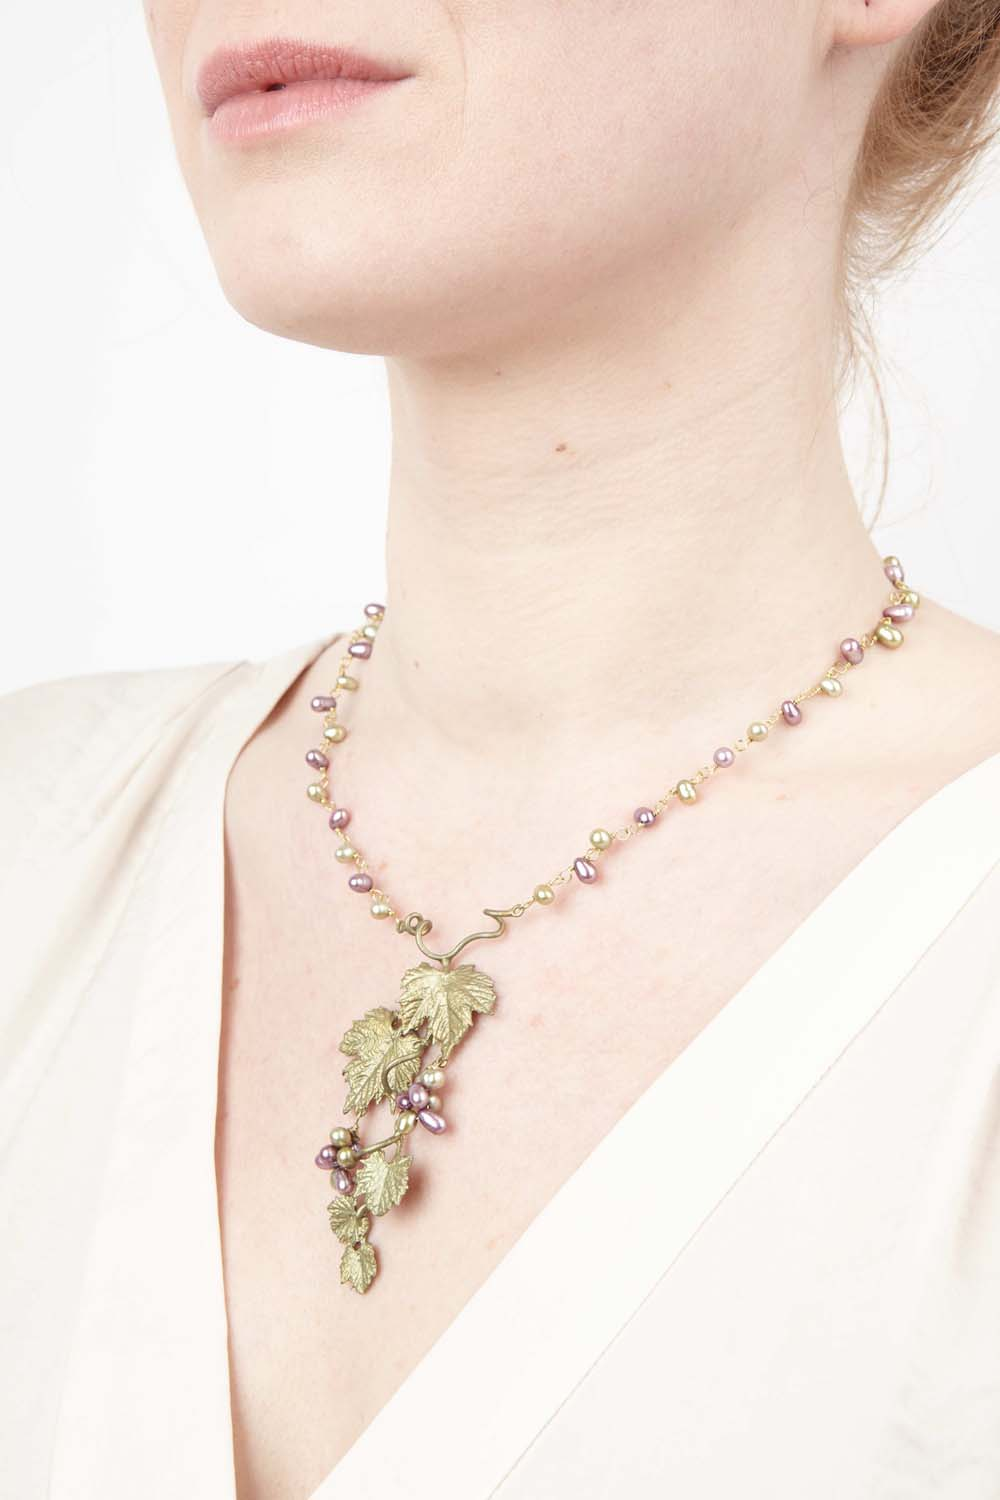 Grape Vines Necklace - Single Pearl